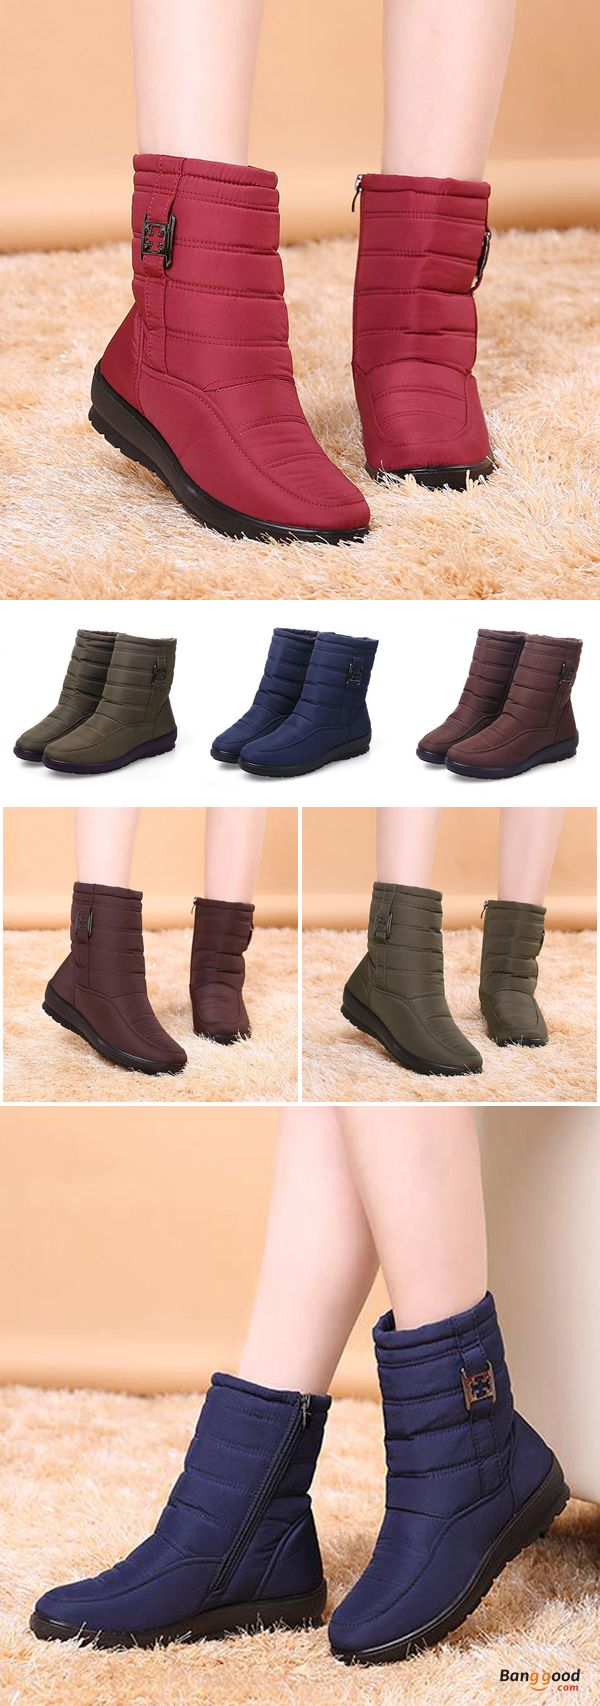 US$39.89 + Free shipping. Size: 5~11. Color: Black, Brown, Red, Blue, Army Green. Women's Shoes, Women's Boots, Women's Fashion, Winter Boots. SHOP NOW!